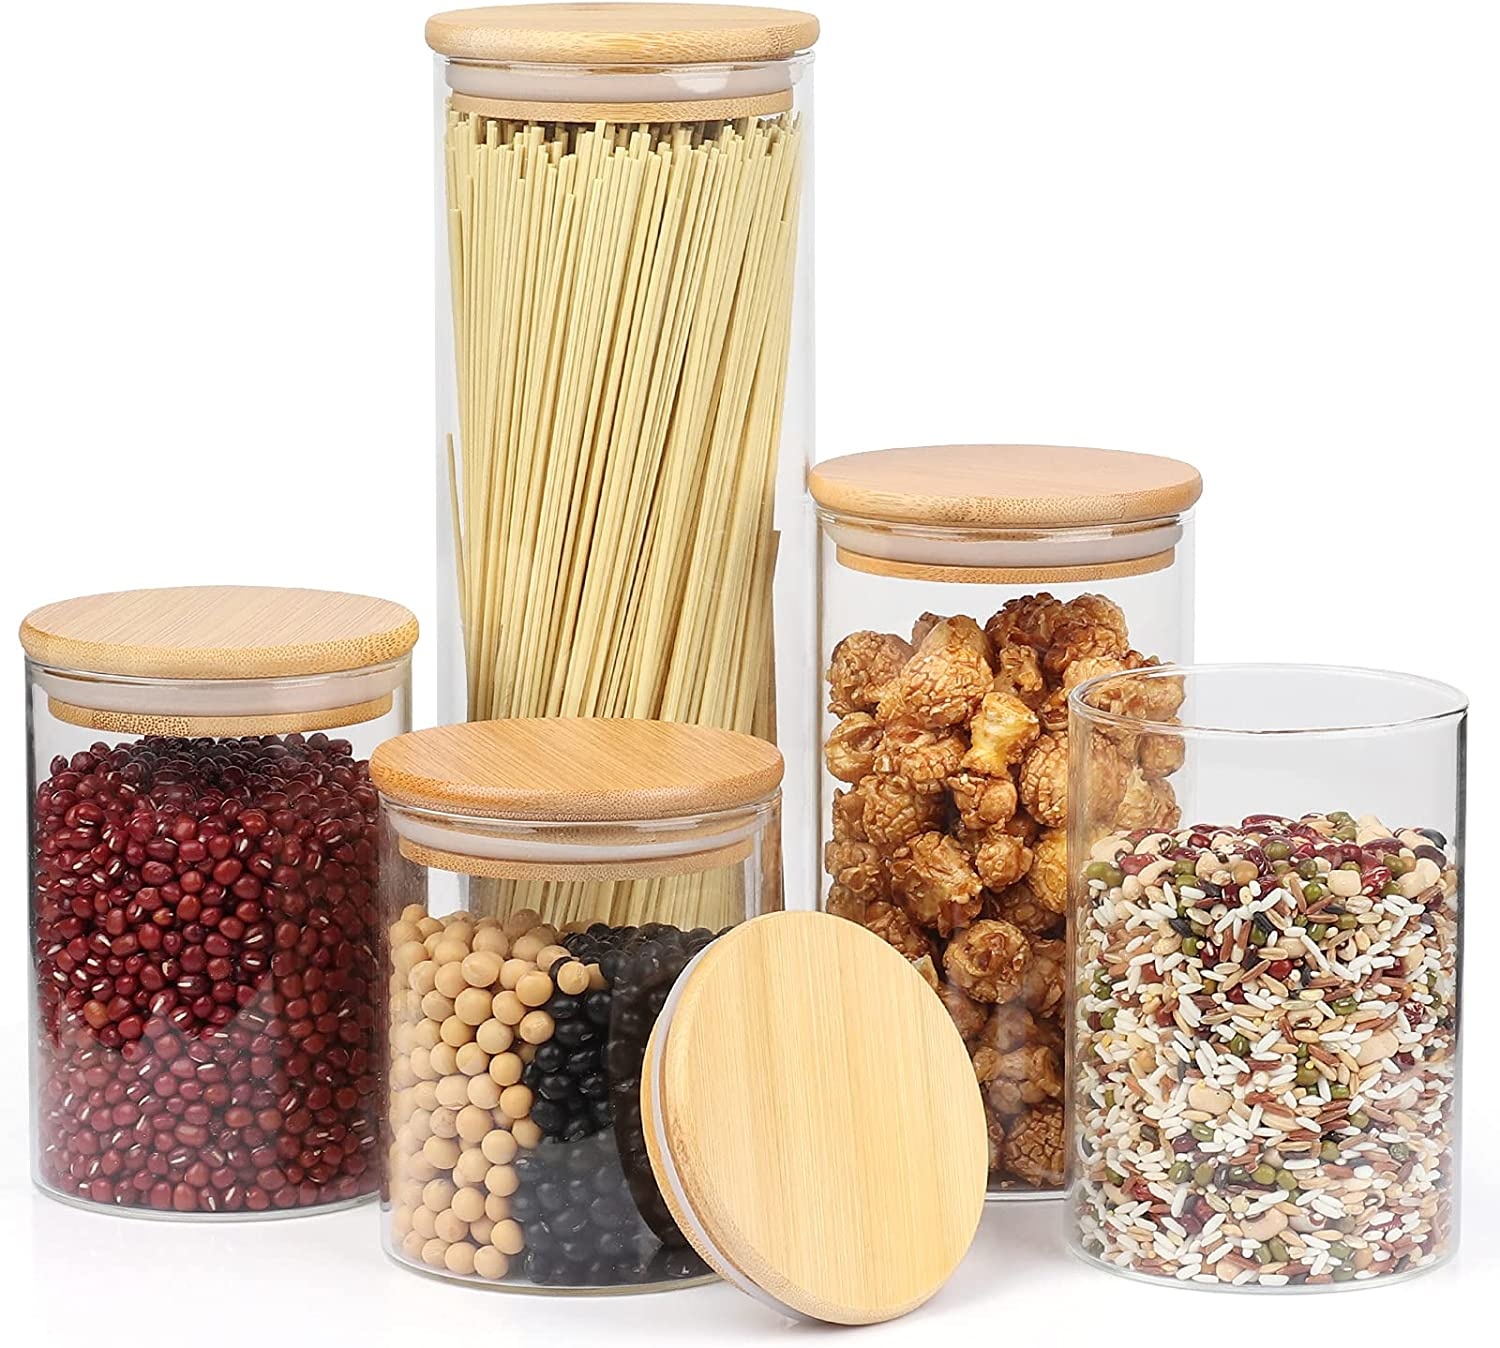 Glass Storage Jars Set of 5, Color4day Stackable Glass Food Storage Containers Set with Airtight Bamboo Lid for Tea, Sugar, Pepper, Spices, Pasta, Coffee Beans, Flour, Herbs, Grains -- Labels and Pen Included